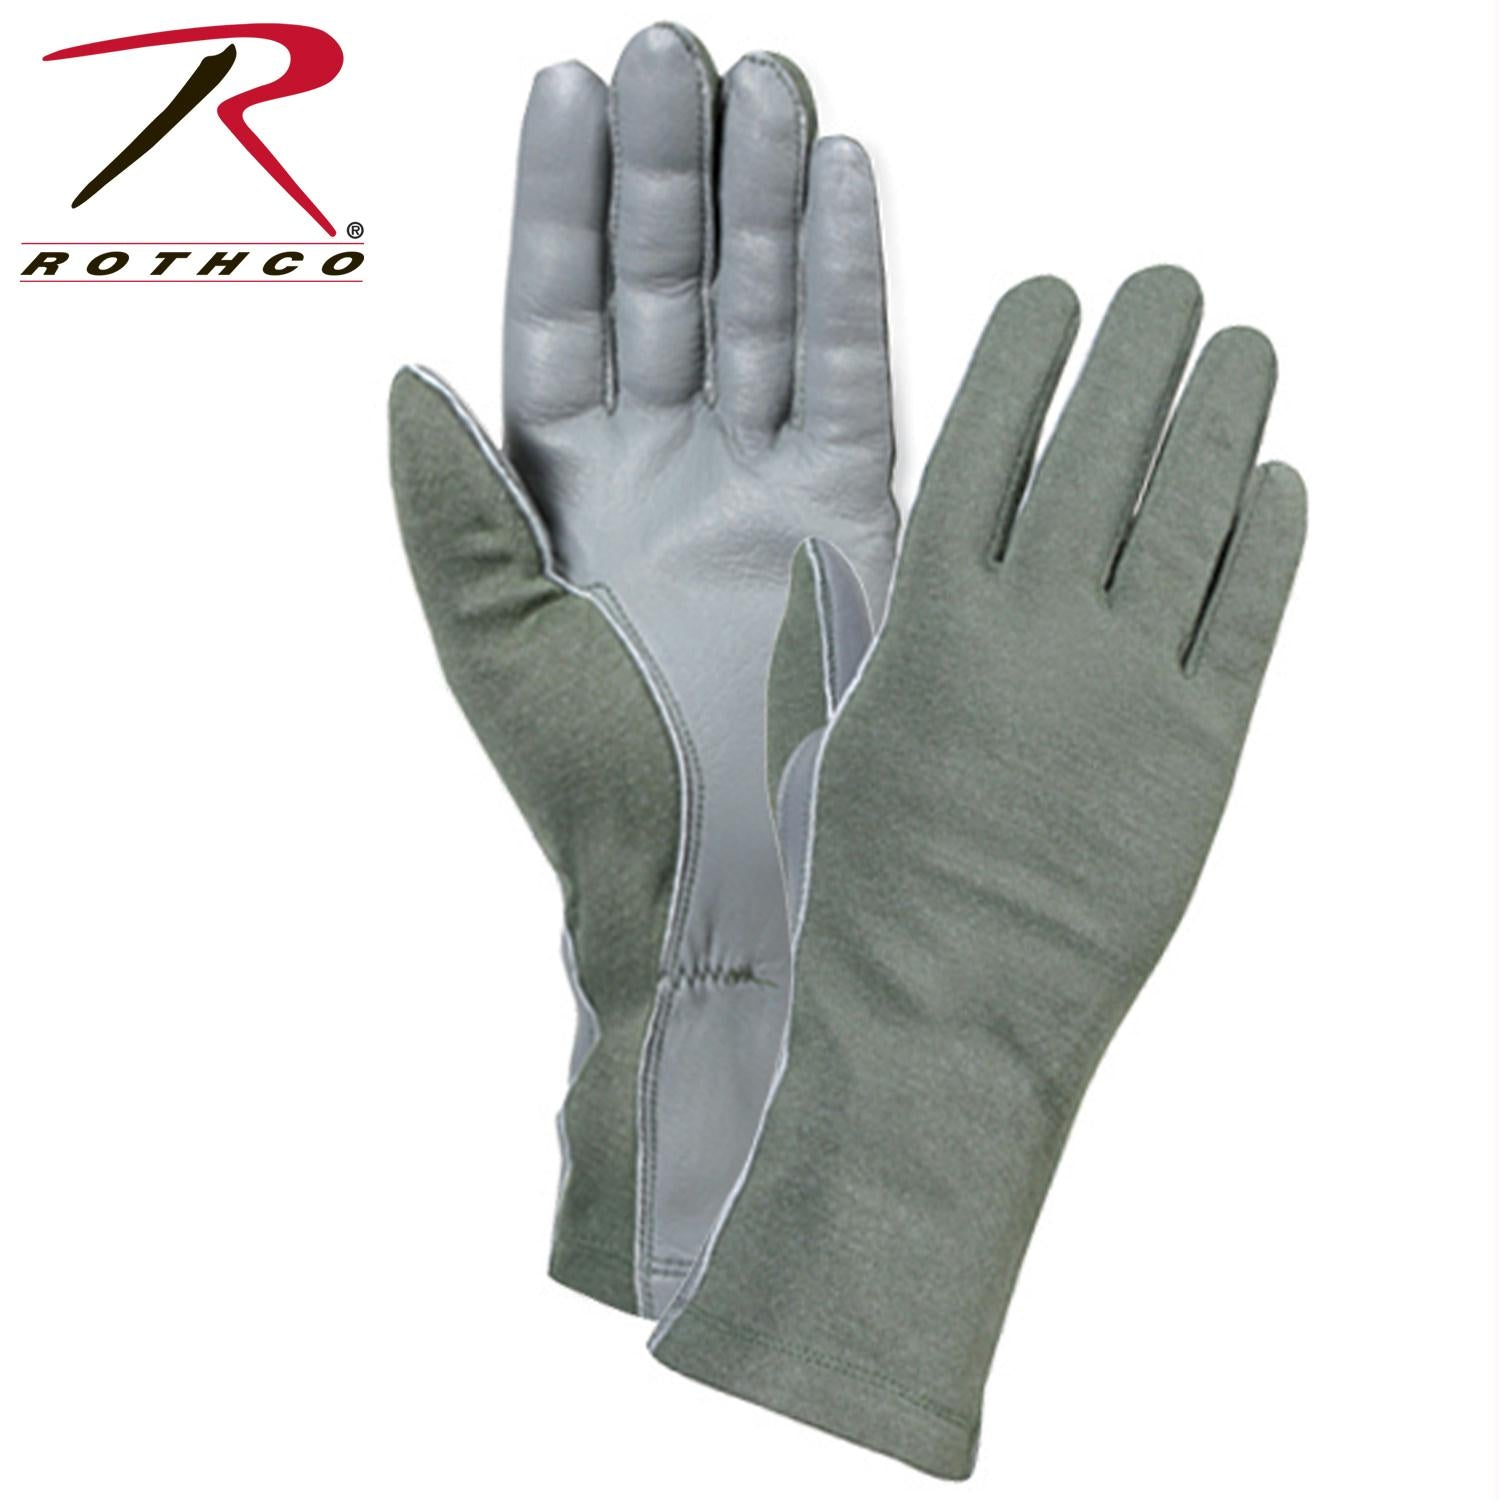 Rothco G.I. Type Flame & Heat Resistant Flight Gloves - Olive Drab / 9